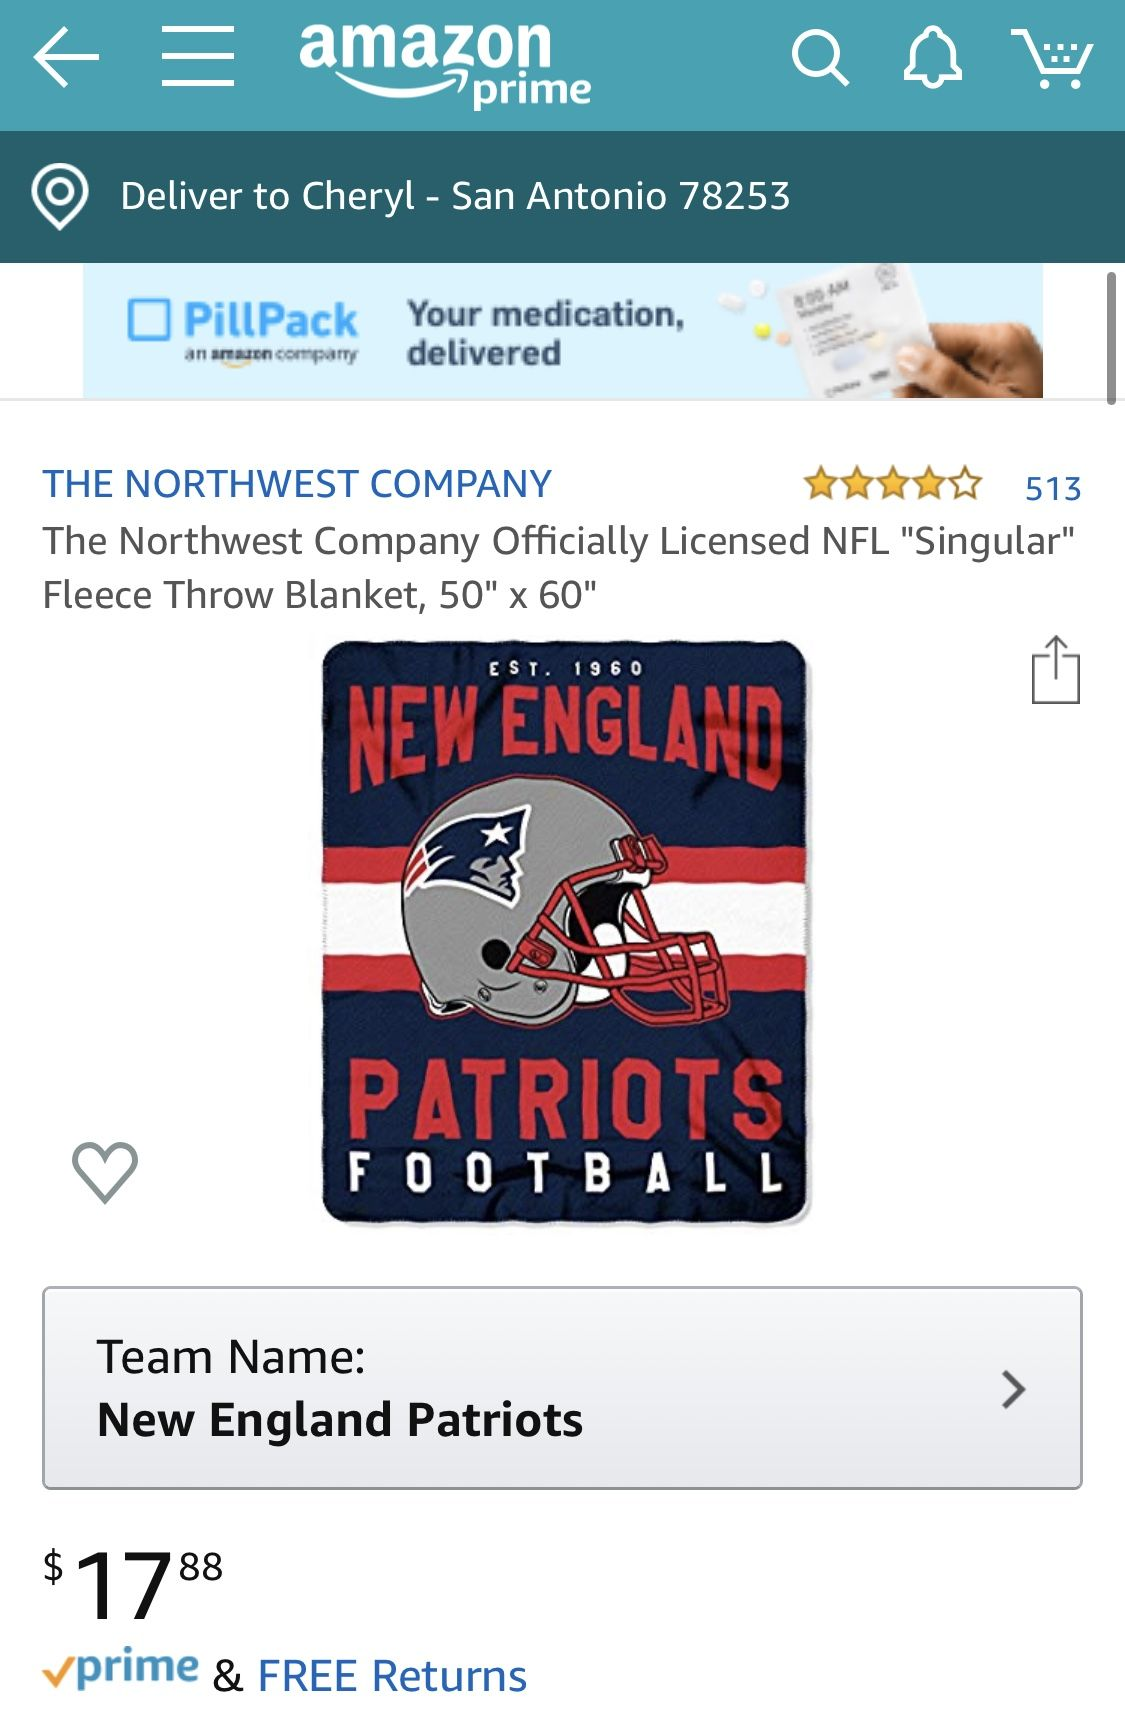 Pin By Cheryl Dalros On Gift Ideas Football Team Names Patriots